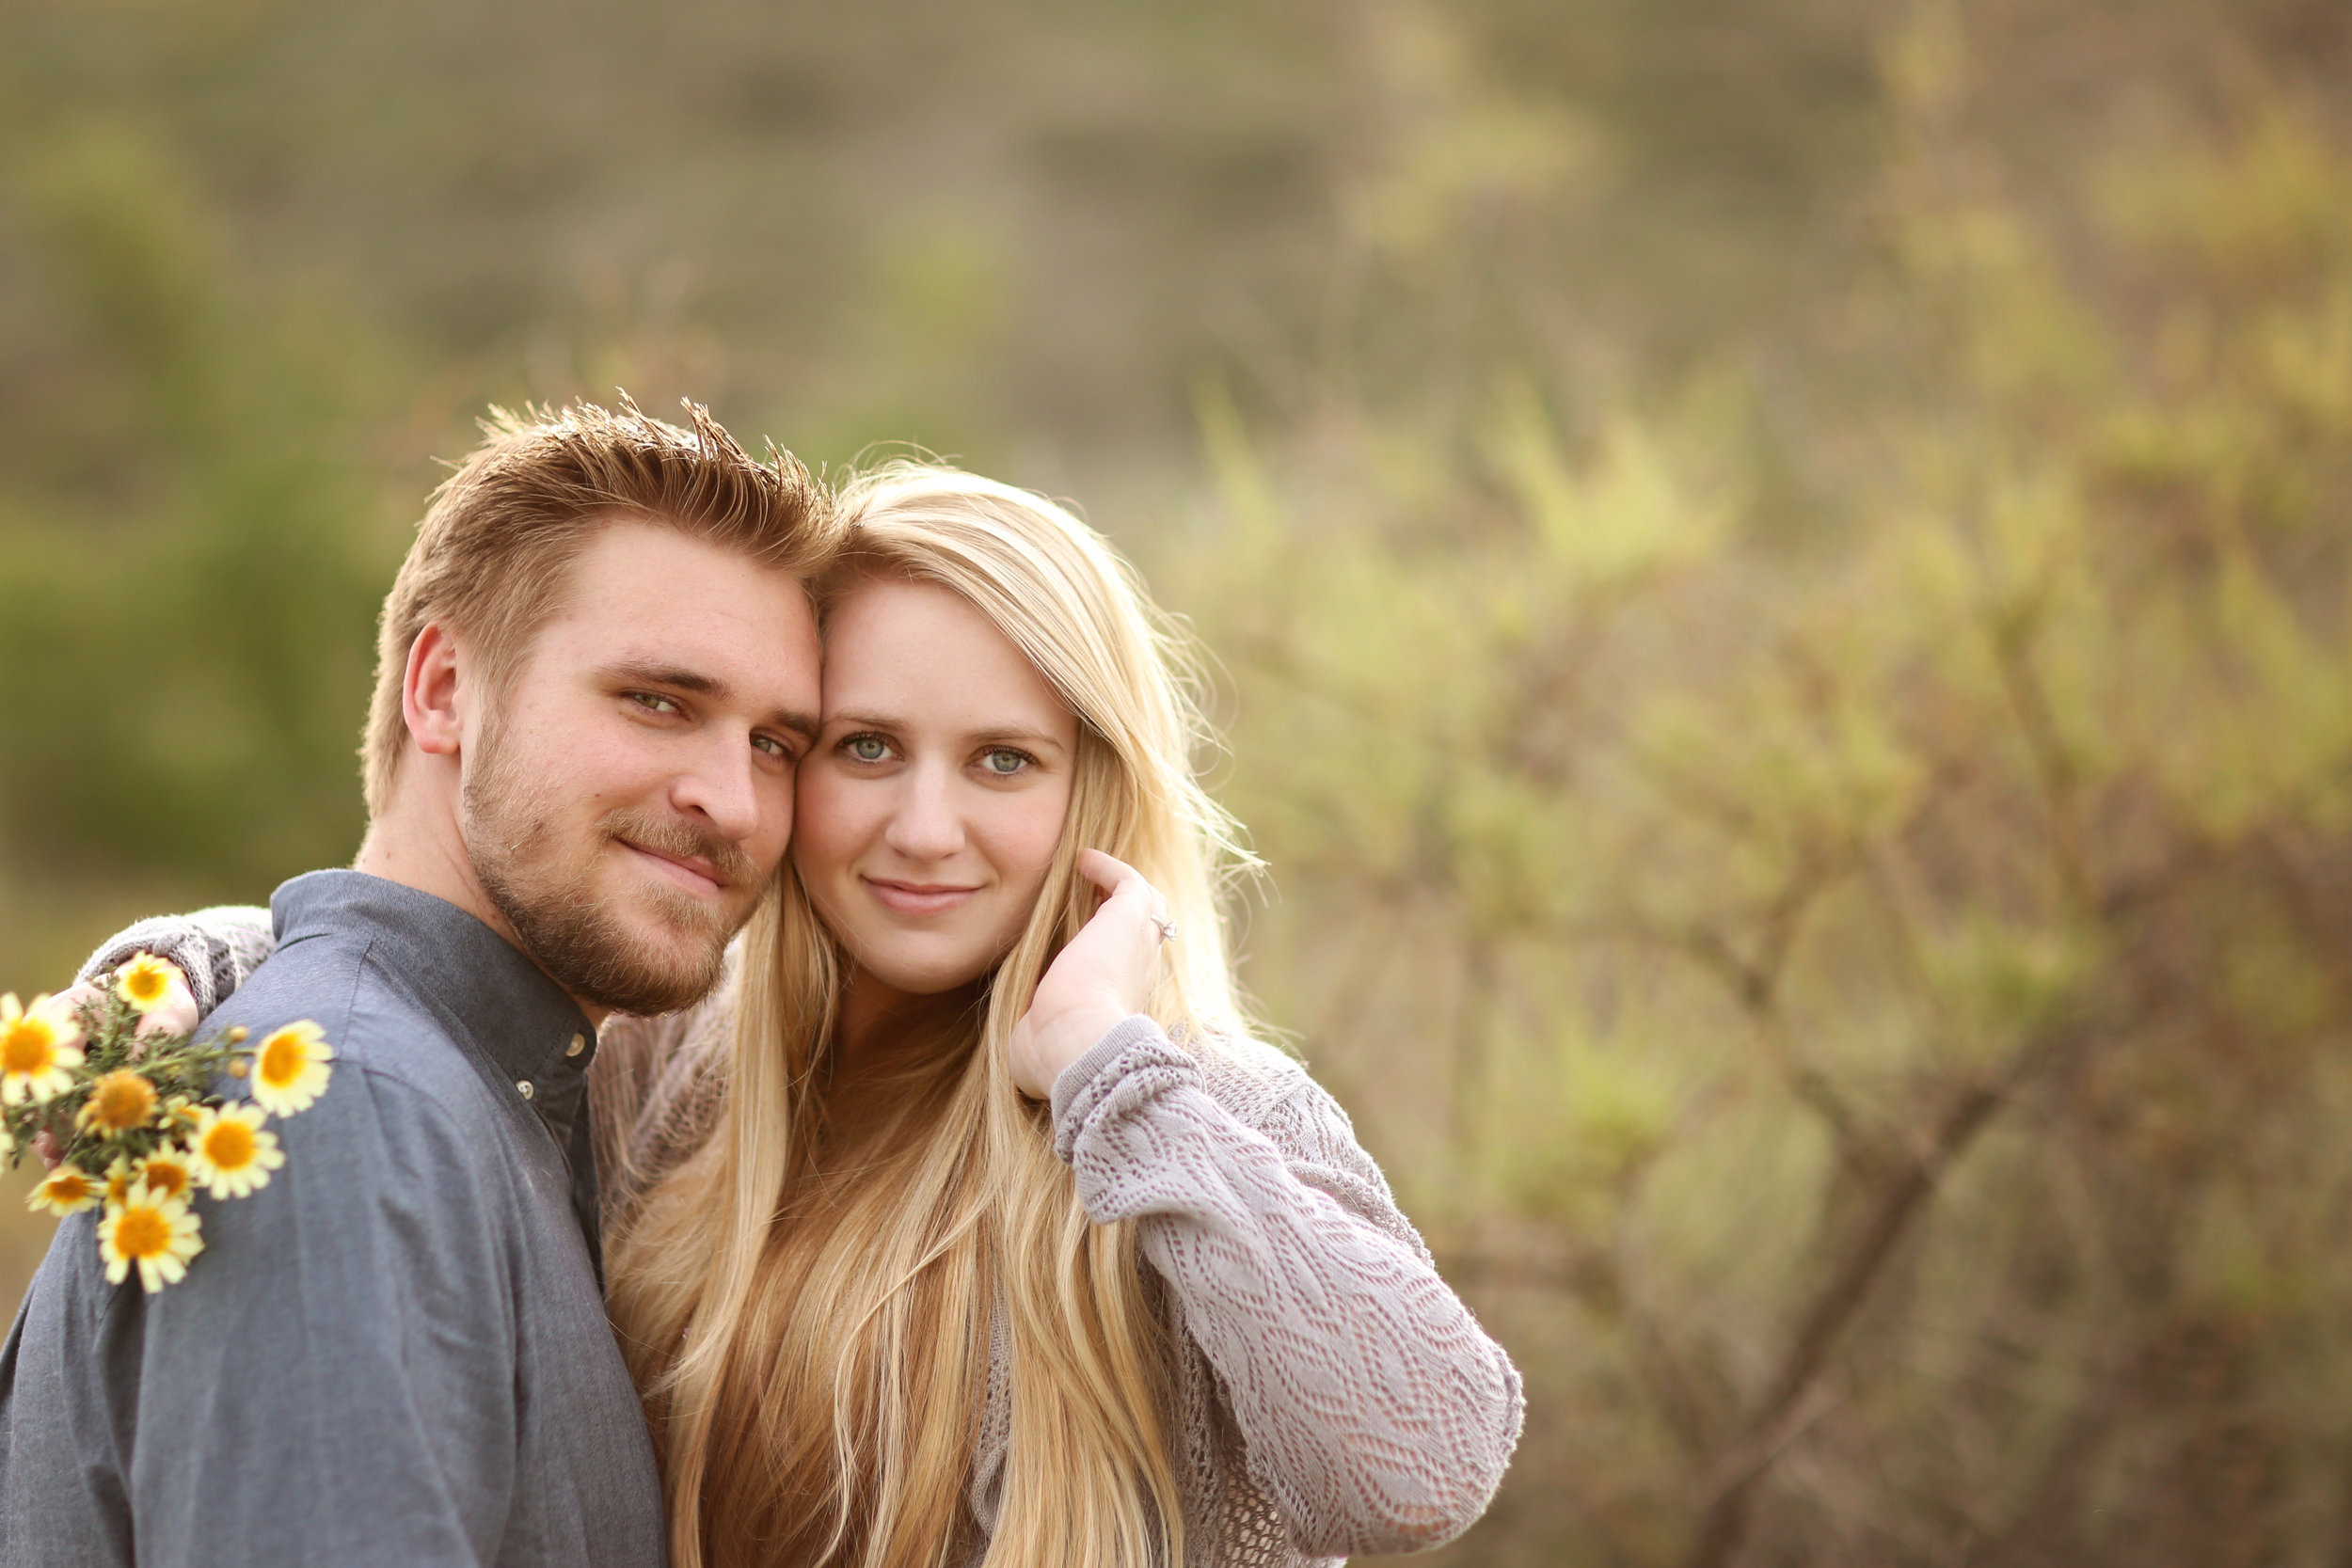 Future bride and groom in a beautiful field holding yellow flowers for their engagement photo. Orange County location.